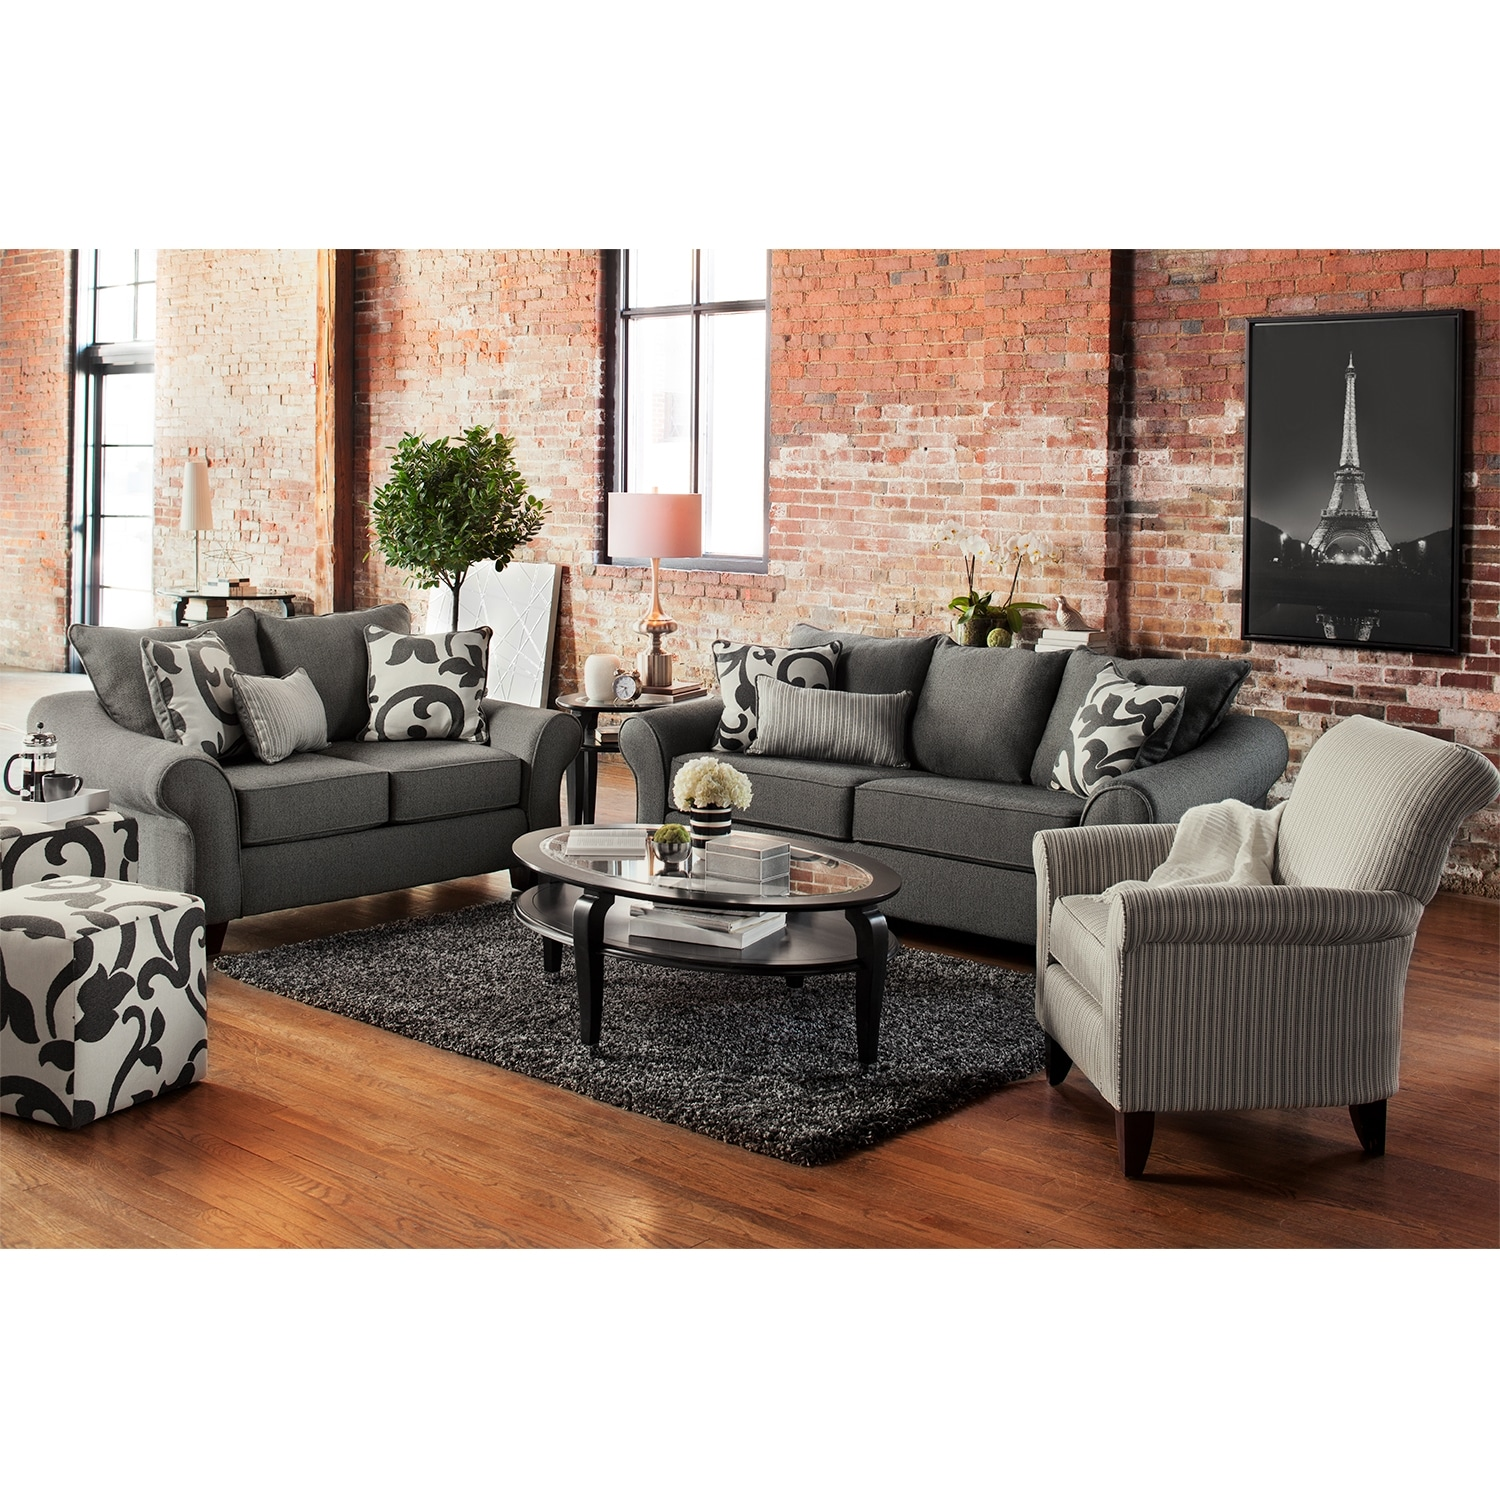 colette sofa loveseat and accent chair set gray with table hampton bay wicker mosaic top coffee outdoor dining clearance safavieh gold small storage box windham cabinet inch